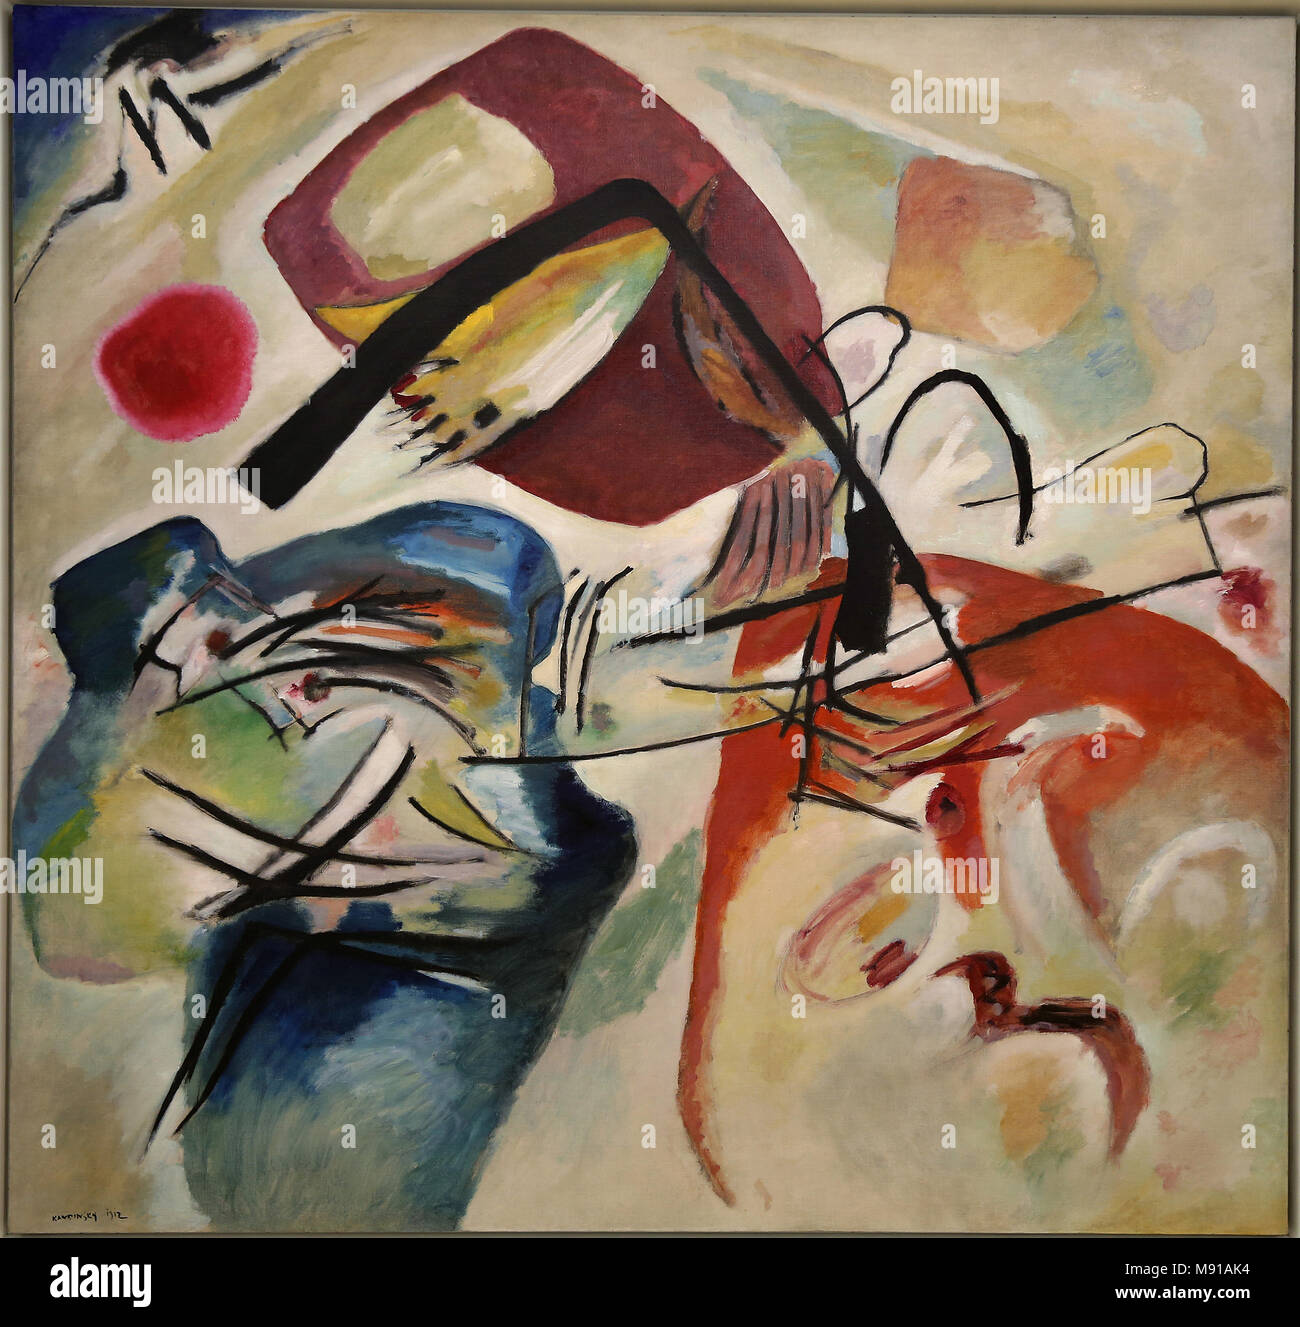 Musee National d'Art Moderne (National Modern art Museum), Georges Pompidou centre, Paris, France. Vassily Kandinsky, With the black bow, 1912, oil on Stock Photo